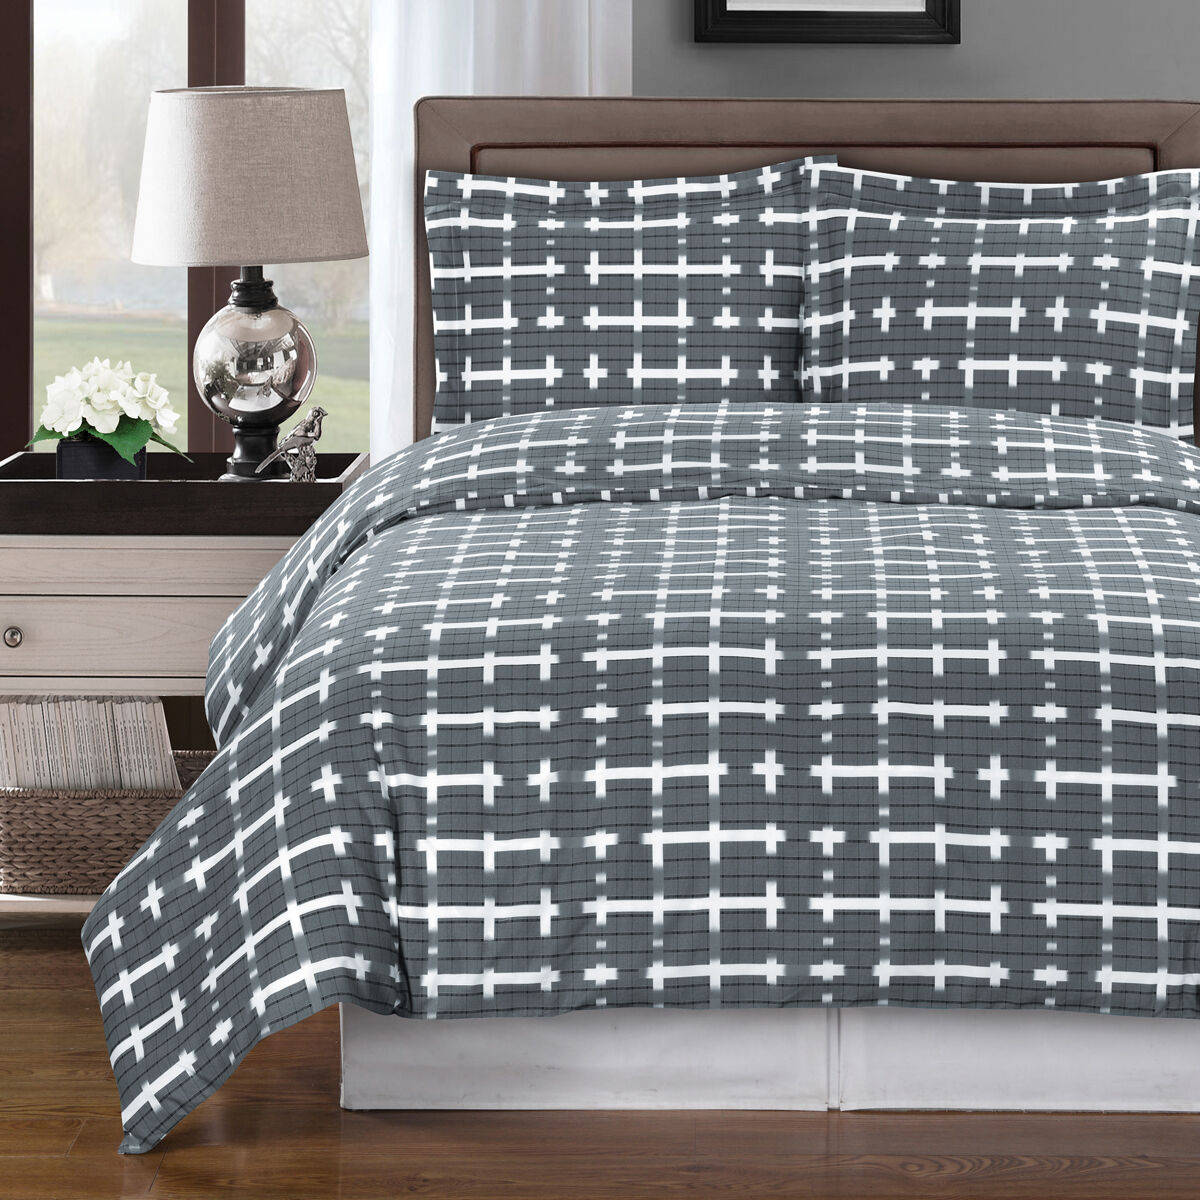 LUXURIOUS Norwich 100% Egyptian Cotton Duvet Cover Sets- 4 Styles 2 Sizes